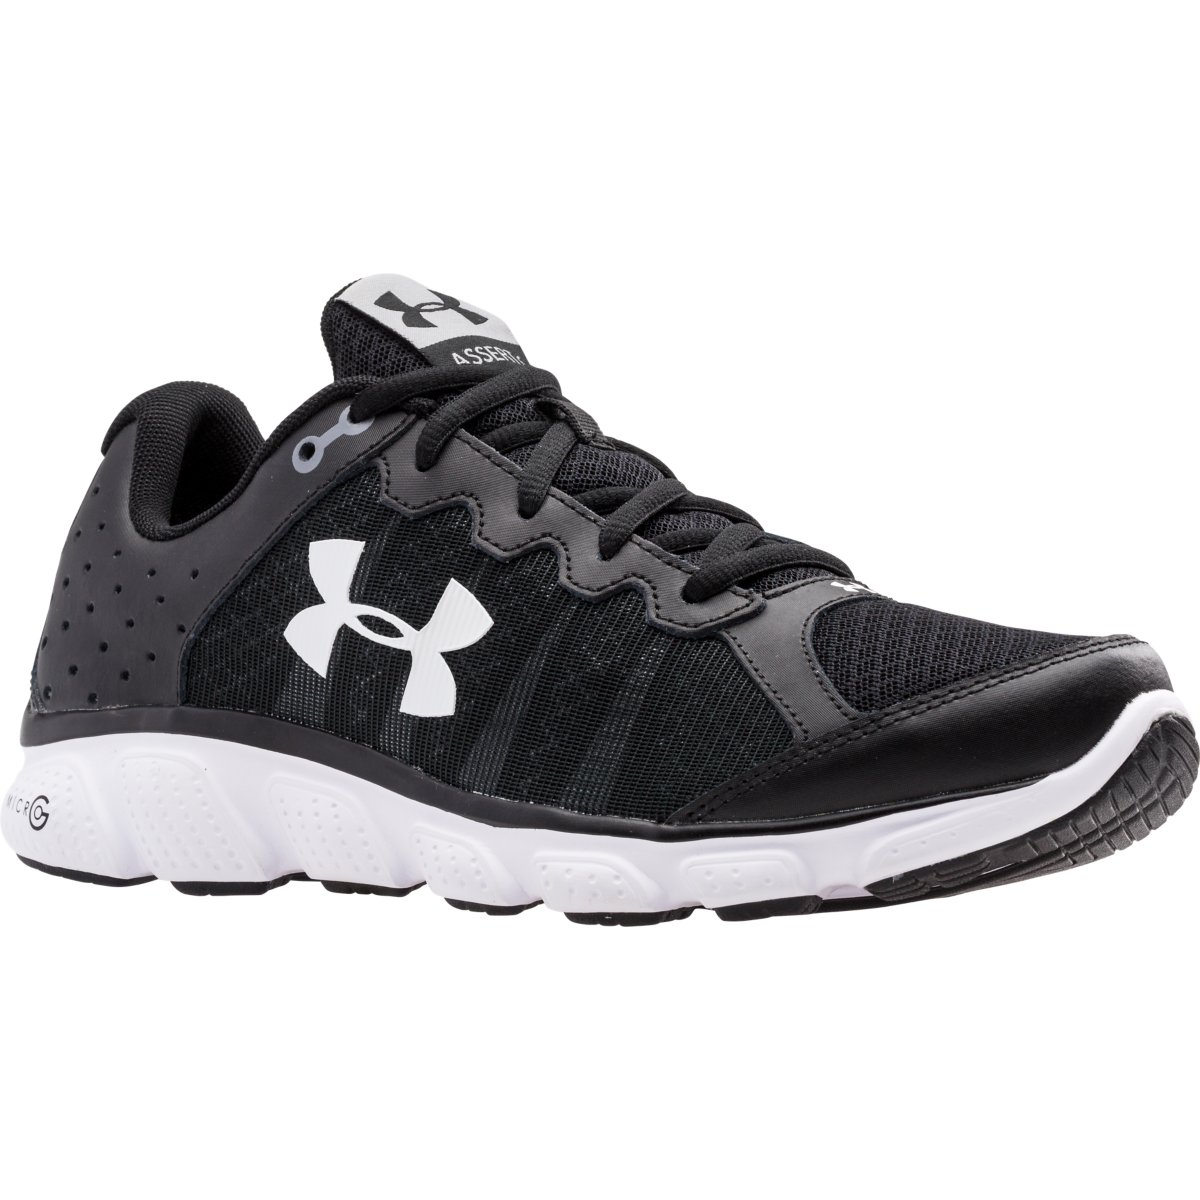 Cheap Under Armour Shoes | Under Armour Shoes for Cheap | Eastbay Outlet